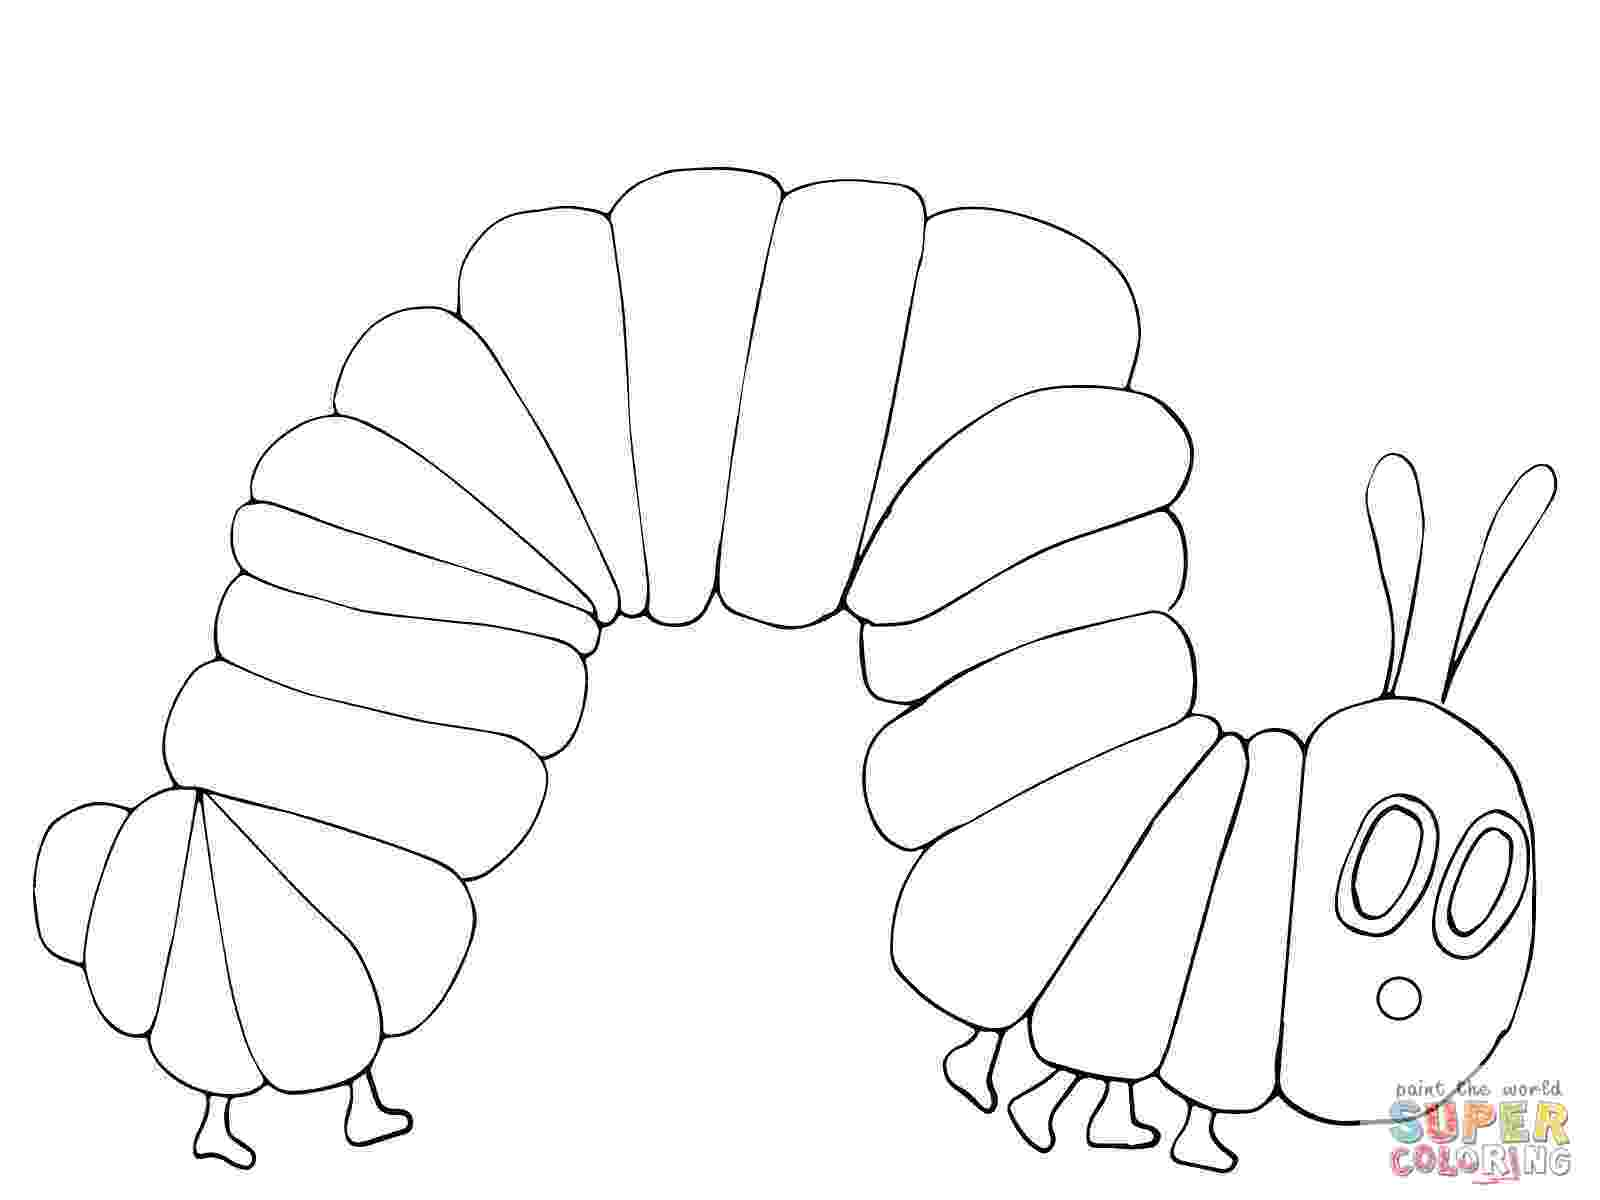 very hungry caterpillar coloring page very hungry caterpillar coloring pages to download and coloring caterpillar page hungry very